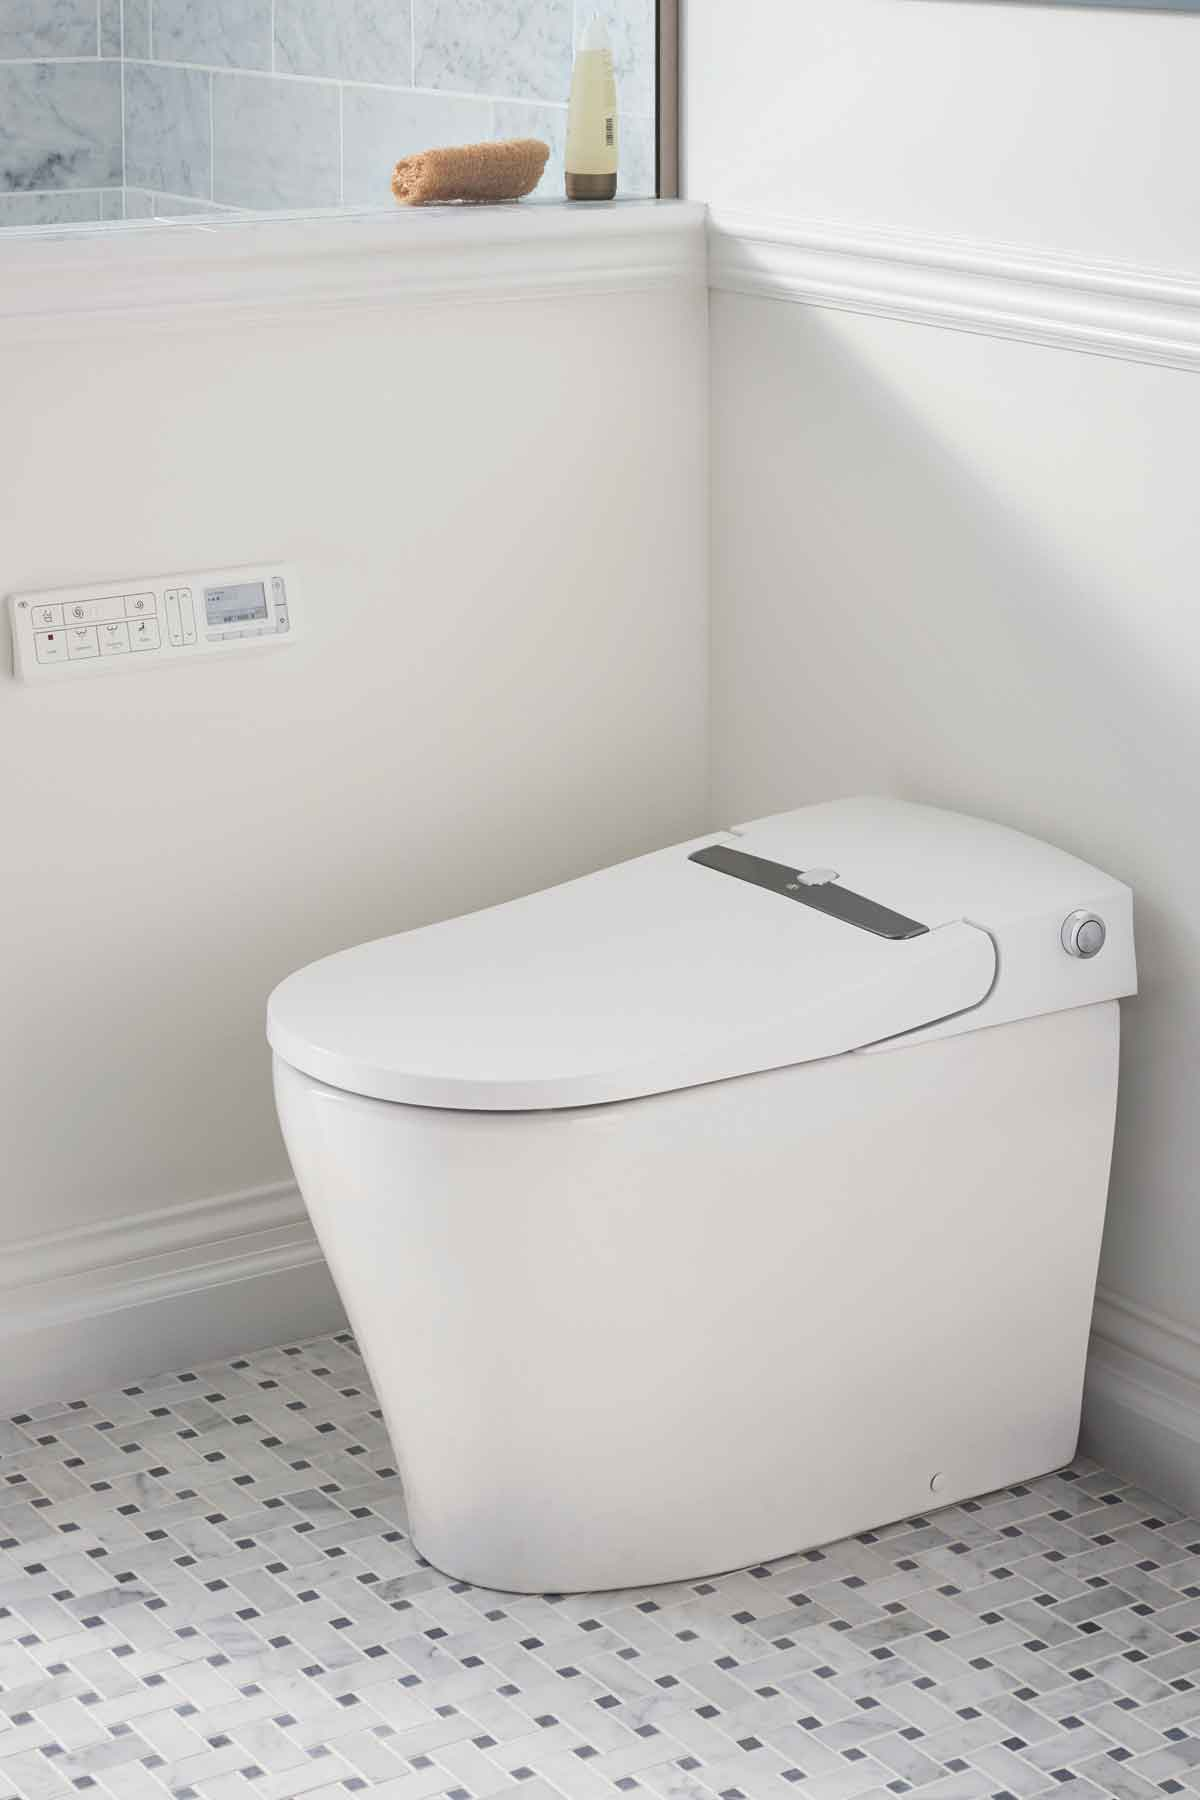 AT200 LS SpaLet Integrated Electronic Bidet Toilet